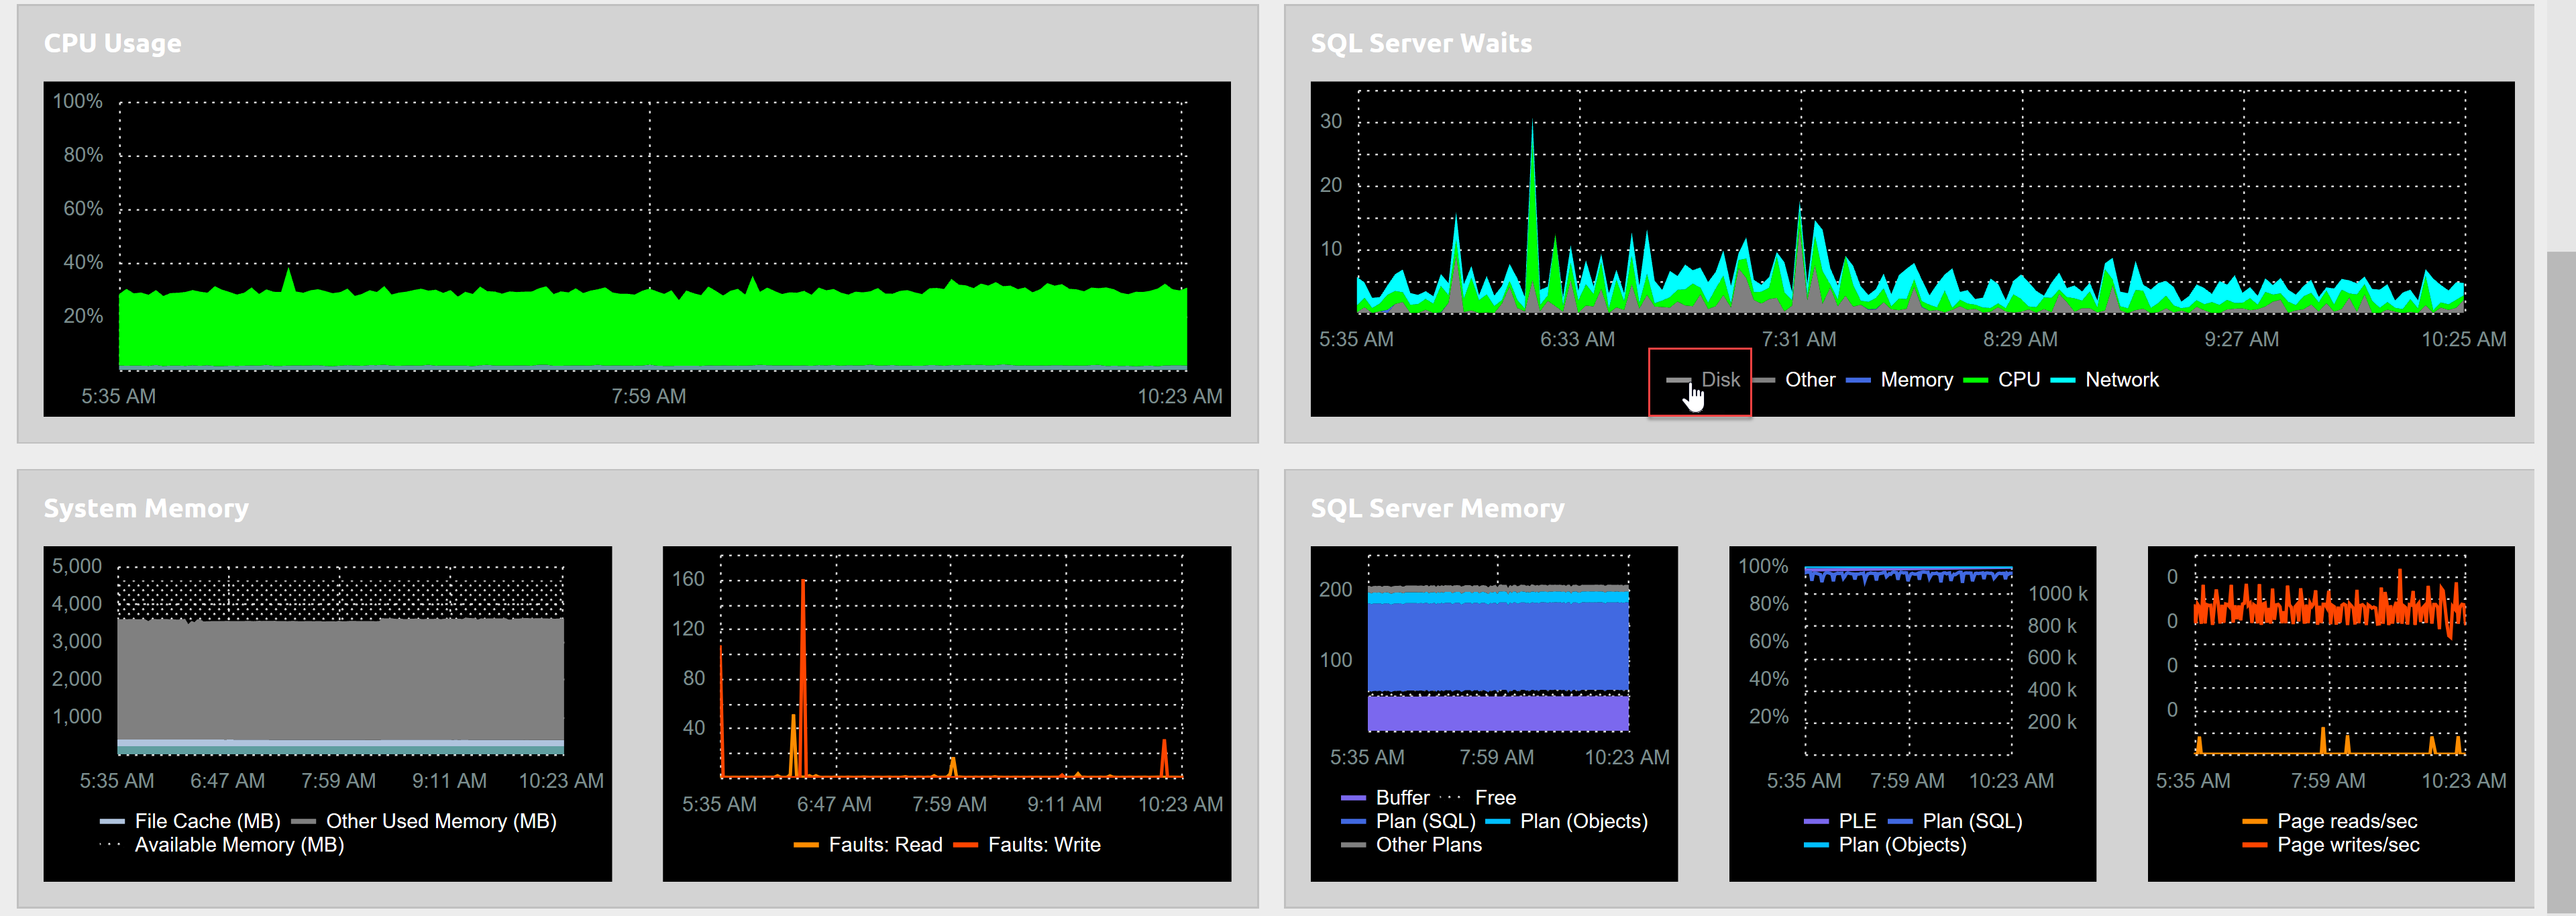 SentryOne Cloud Dashboard graphs hide a metric